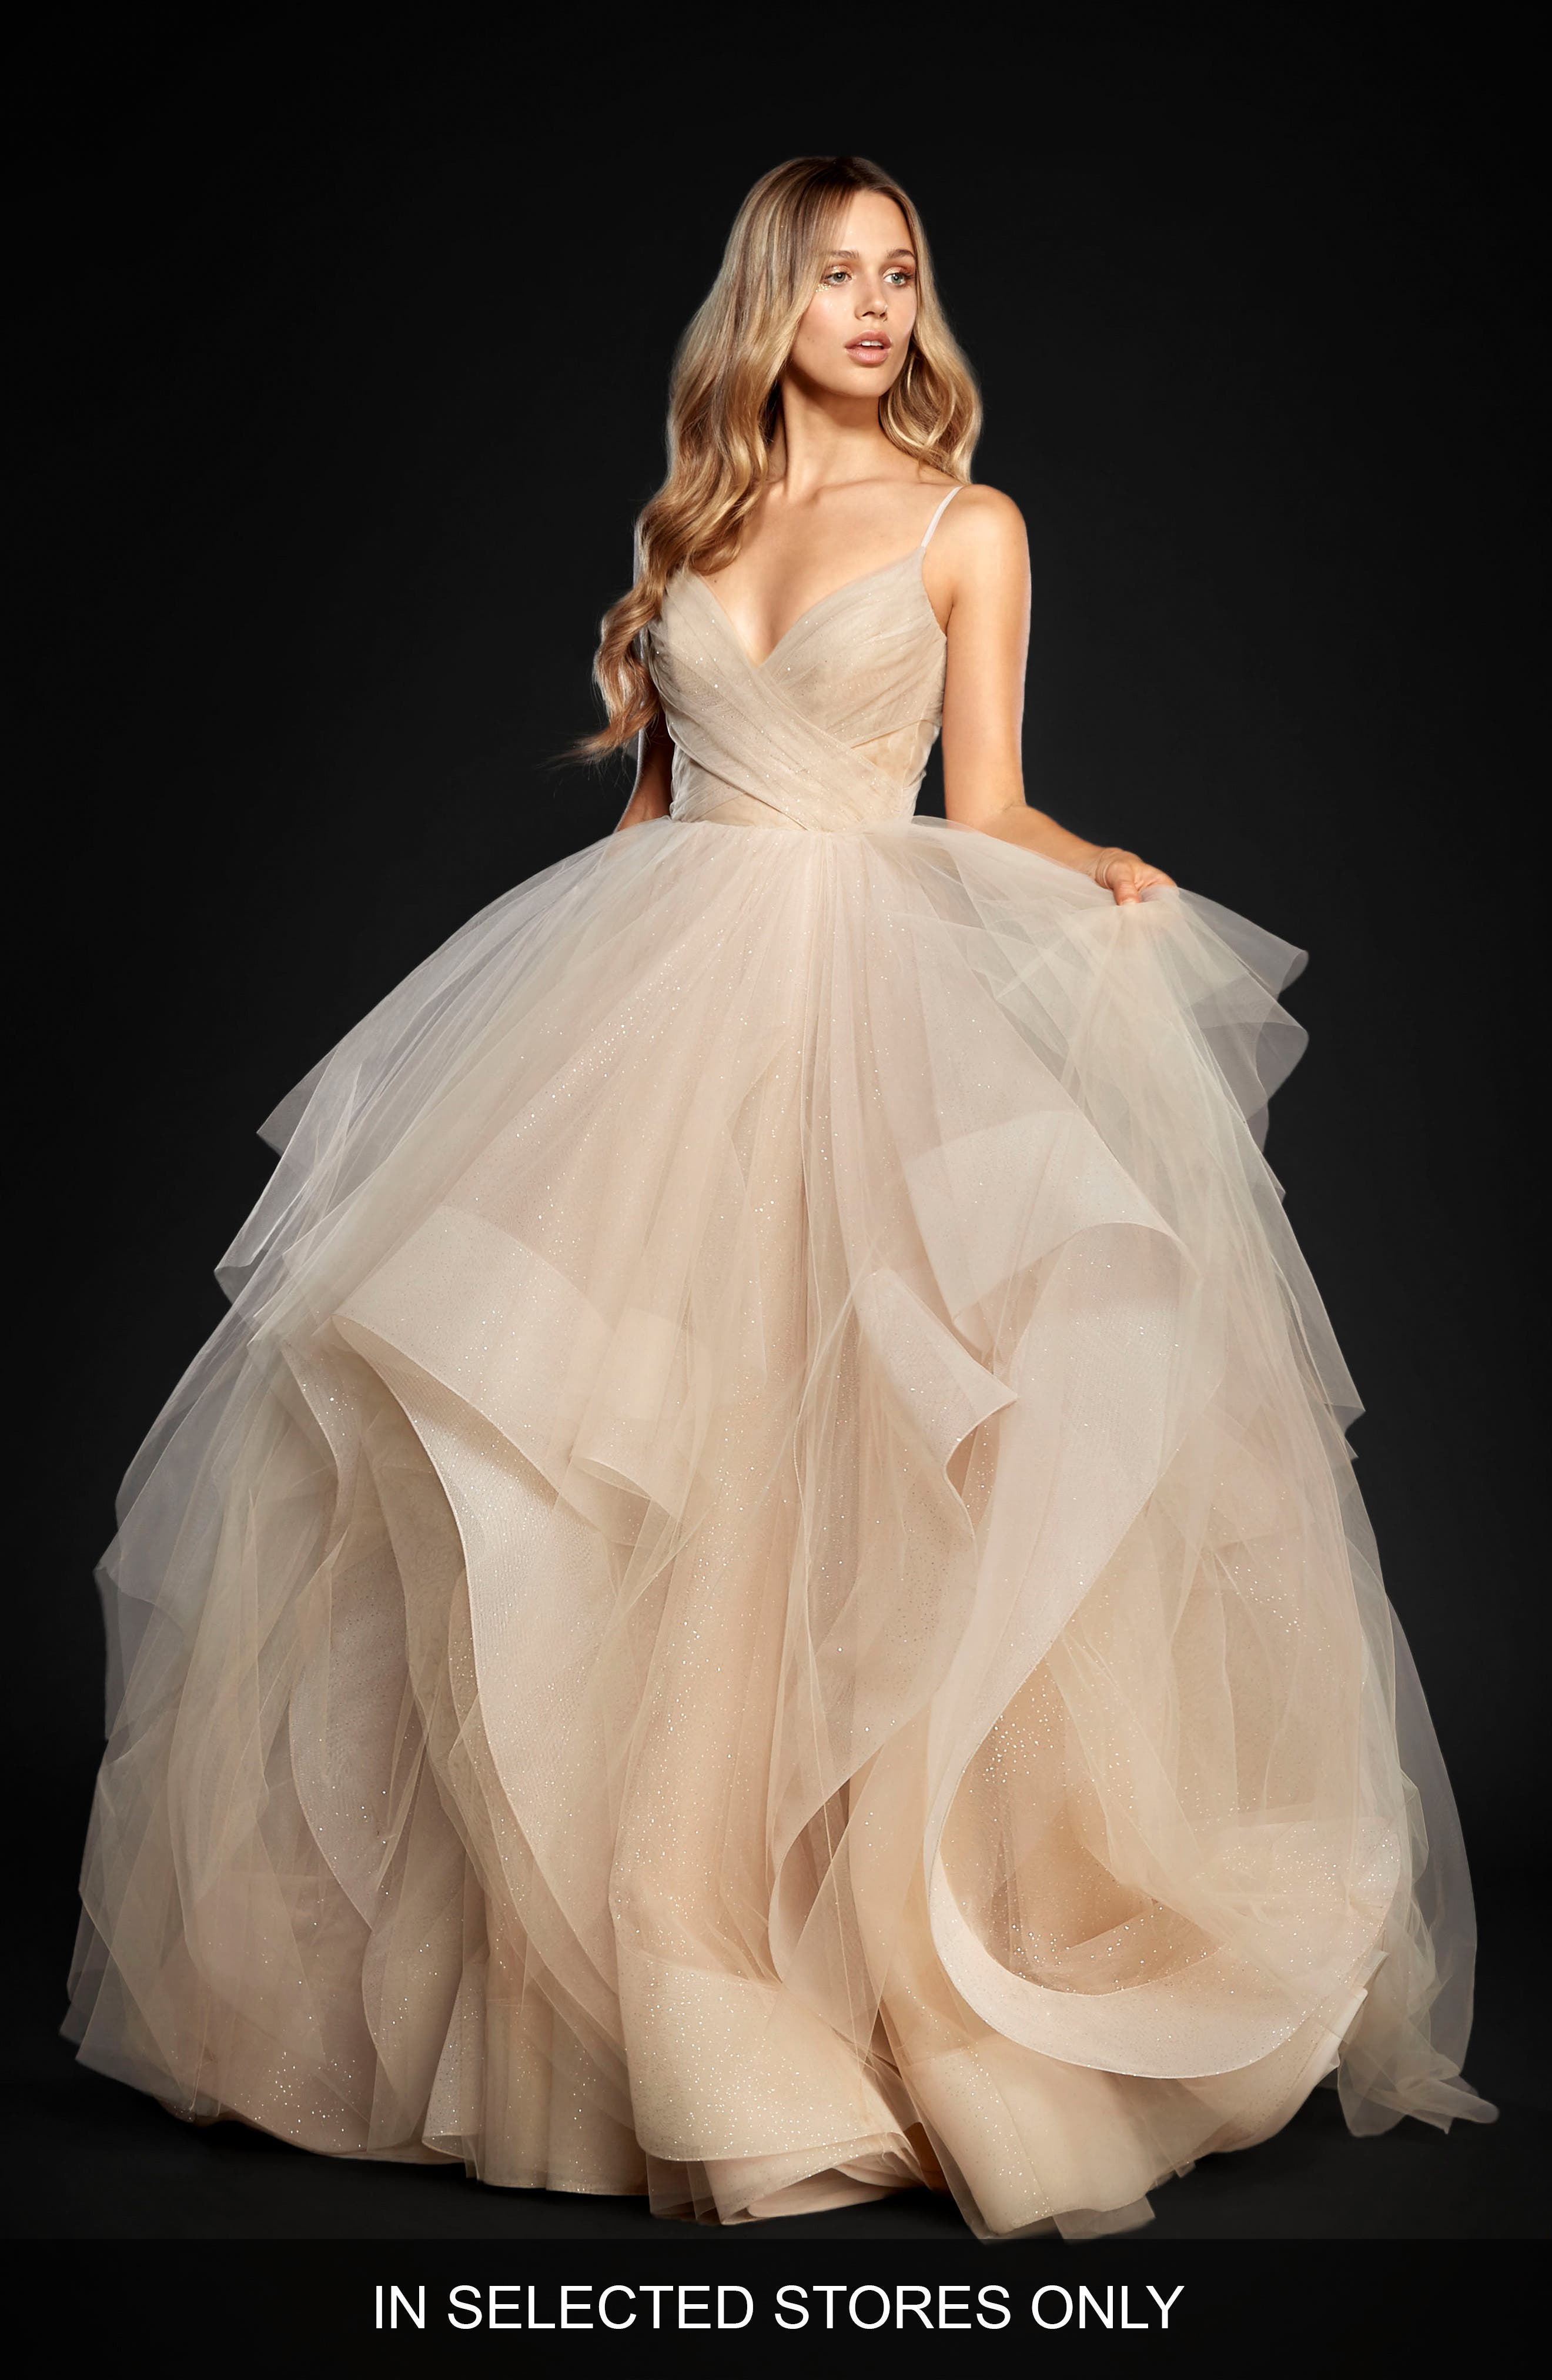 Chandon Stardust Tulle Ballgown,                         Main,                         color, Moet